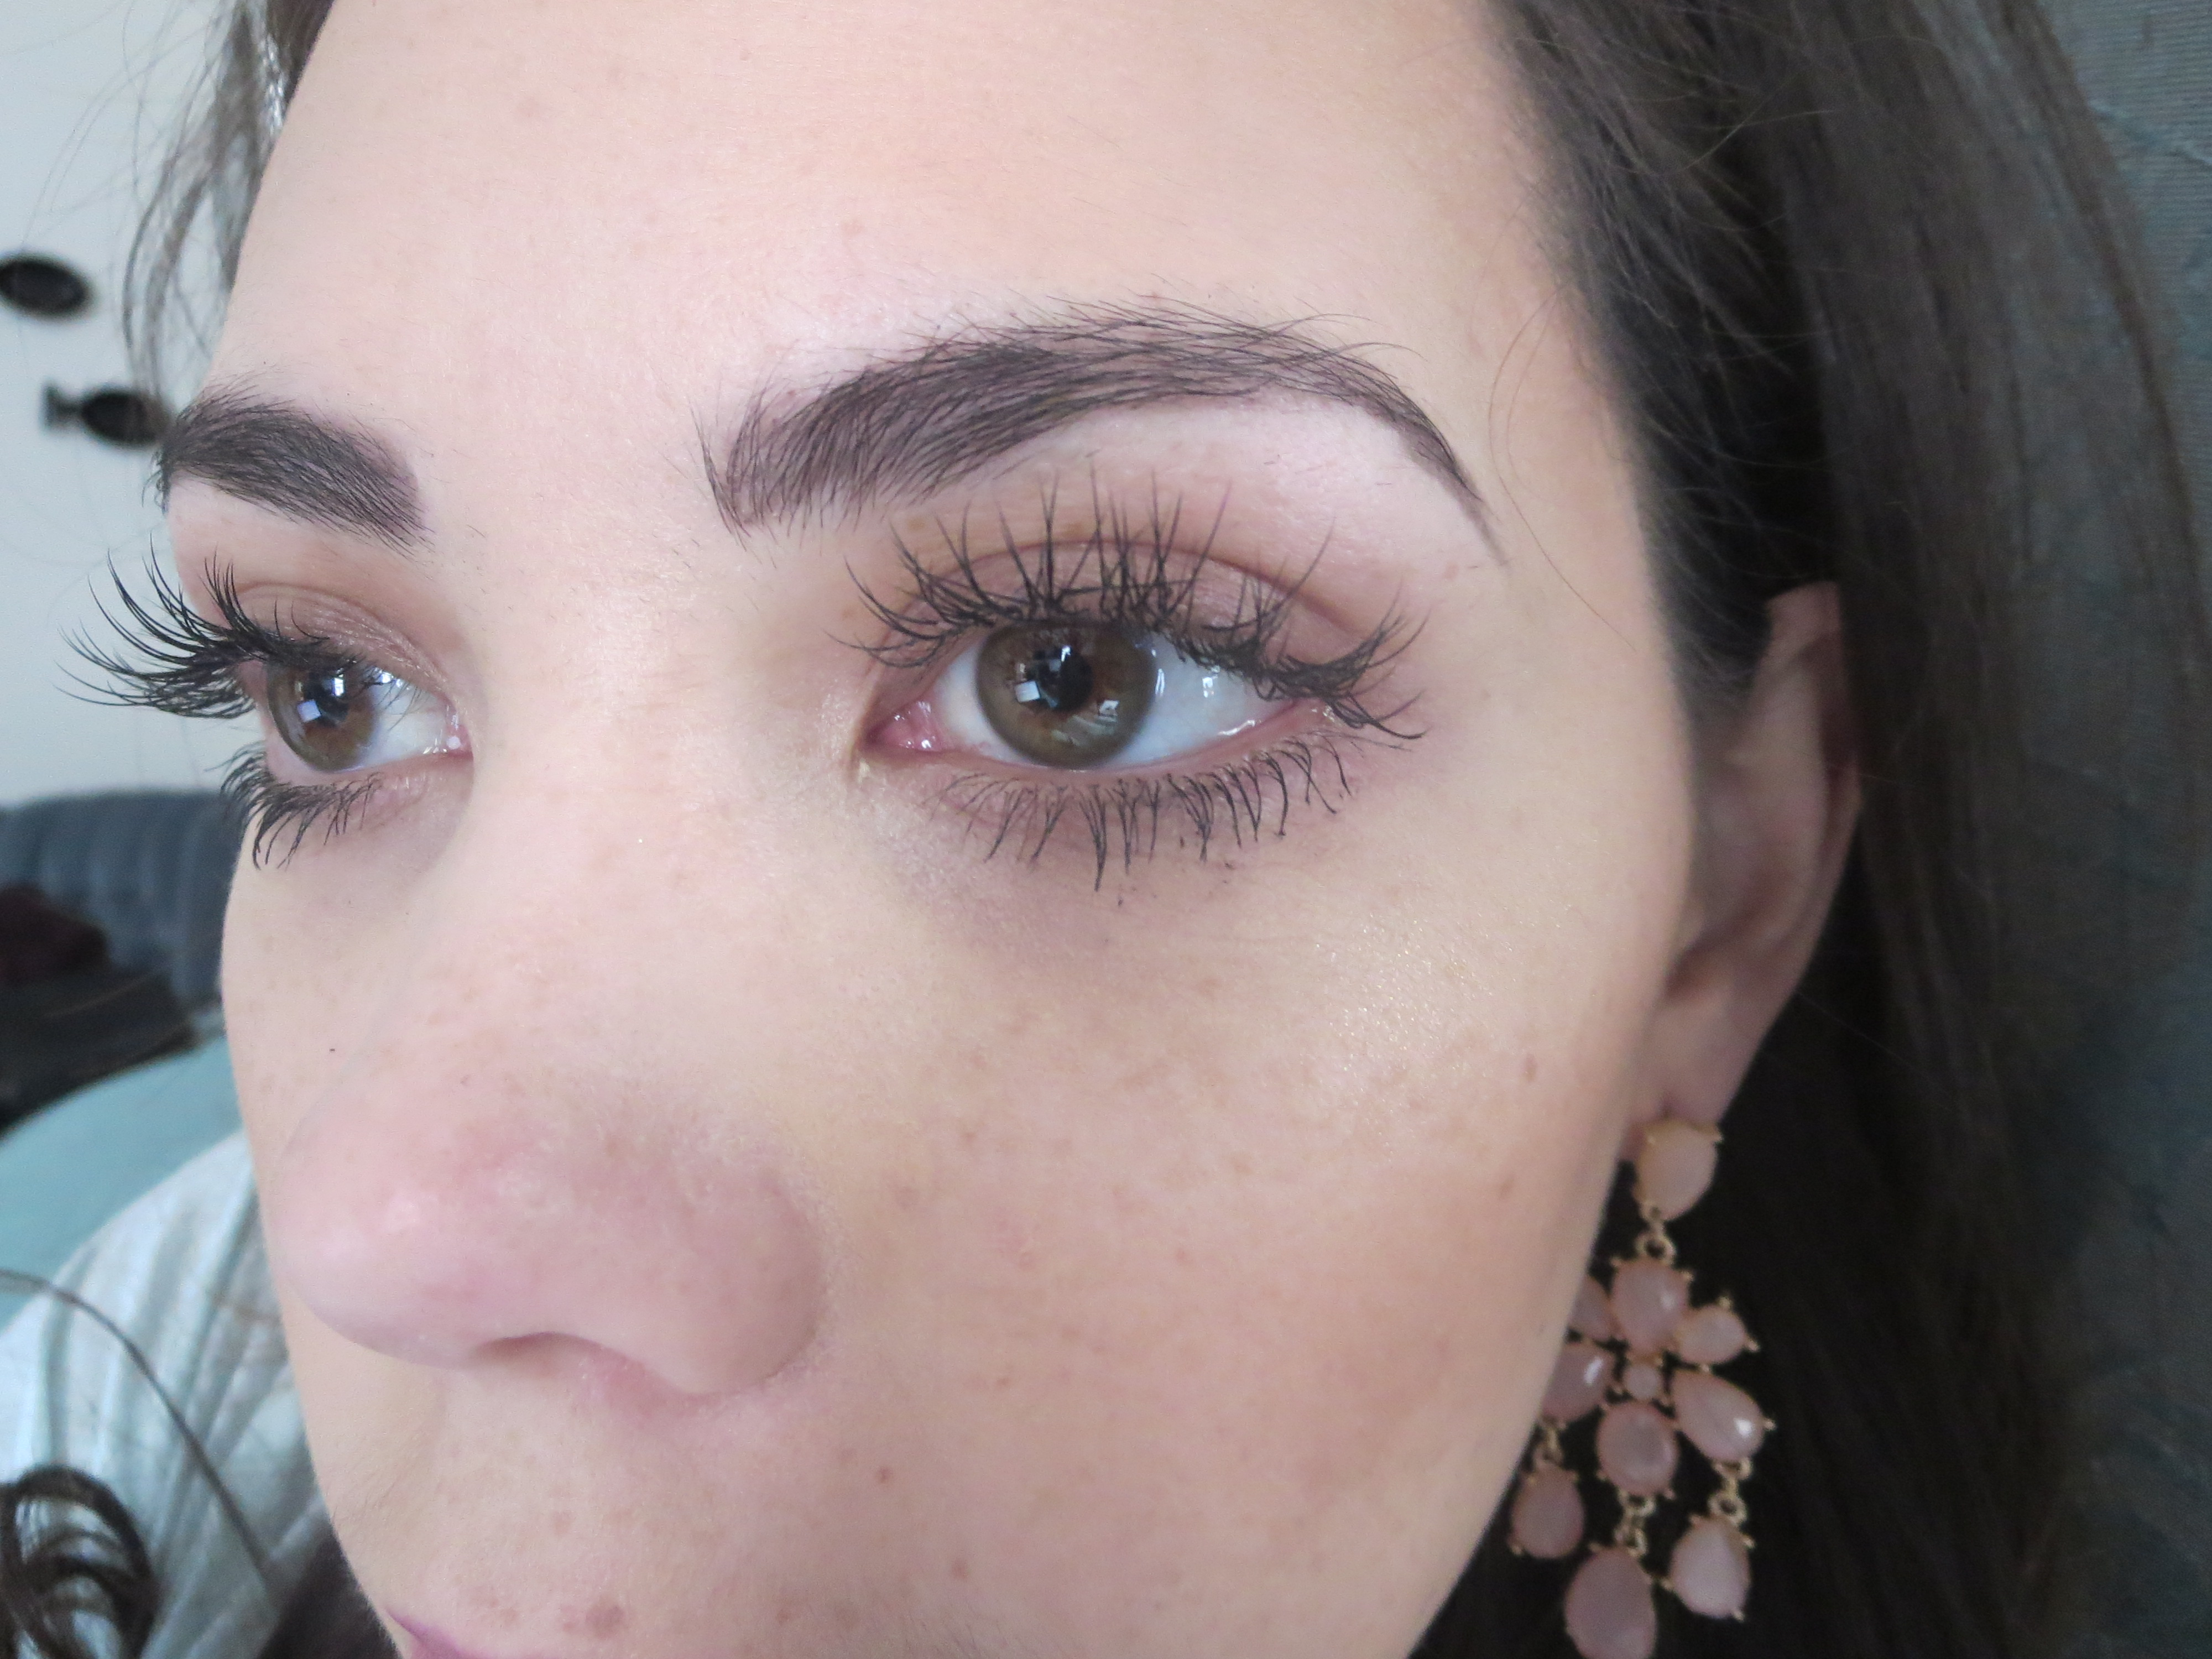 Eyelash Extensions | Some Mohr Life